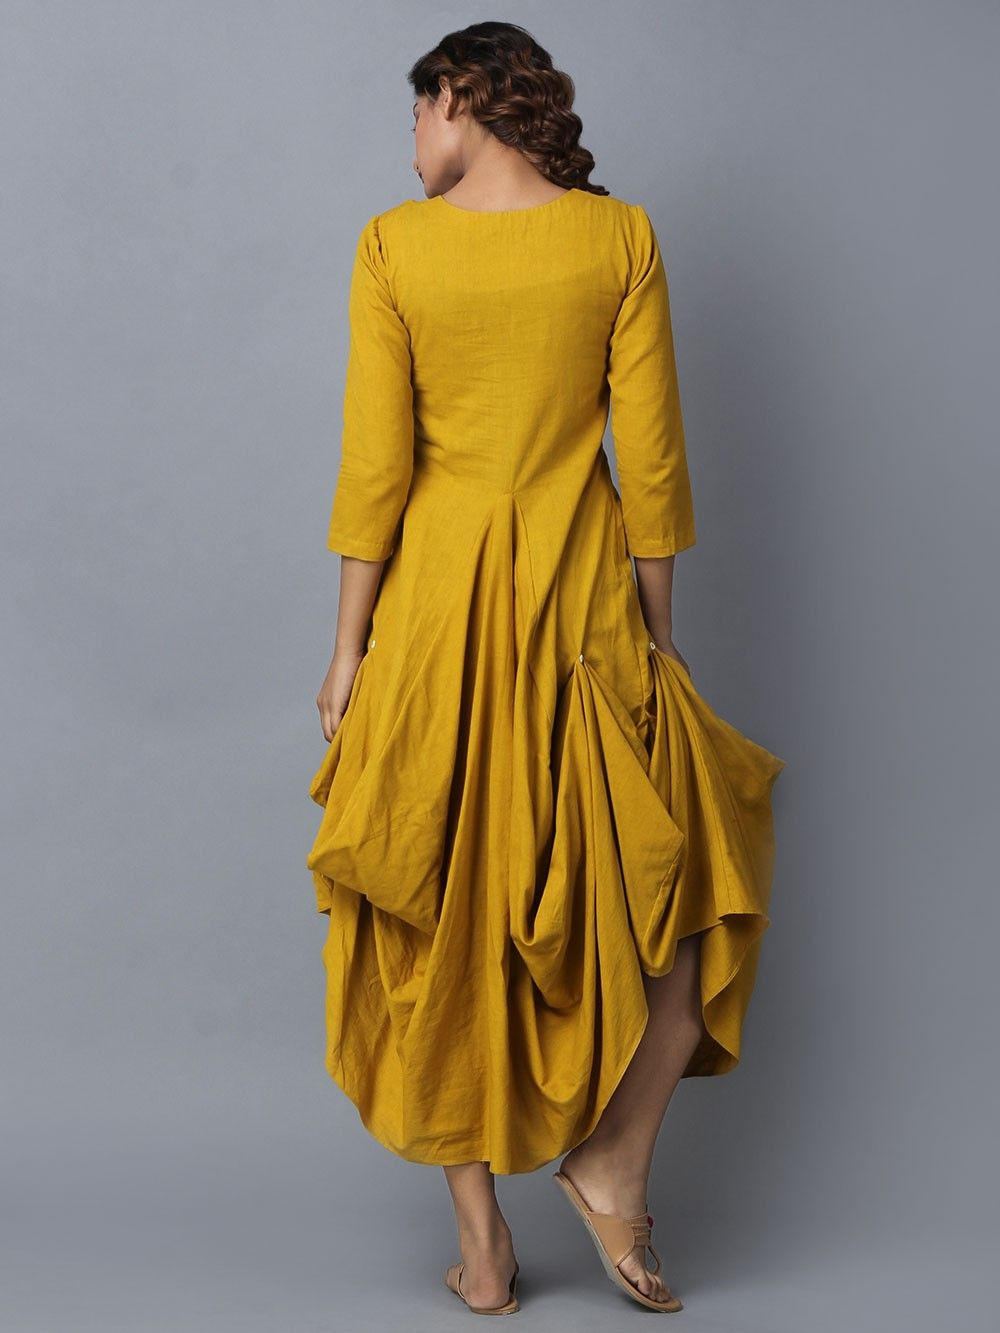 Excellent Buy Mustard Yellow Cotton Linen Asymmetric Dress online at Theloom GX35